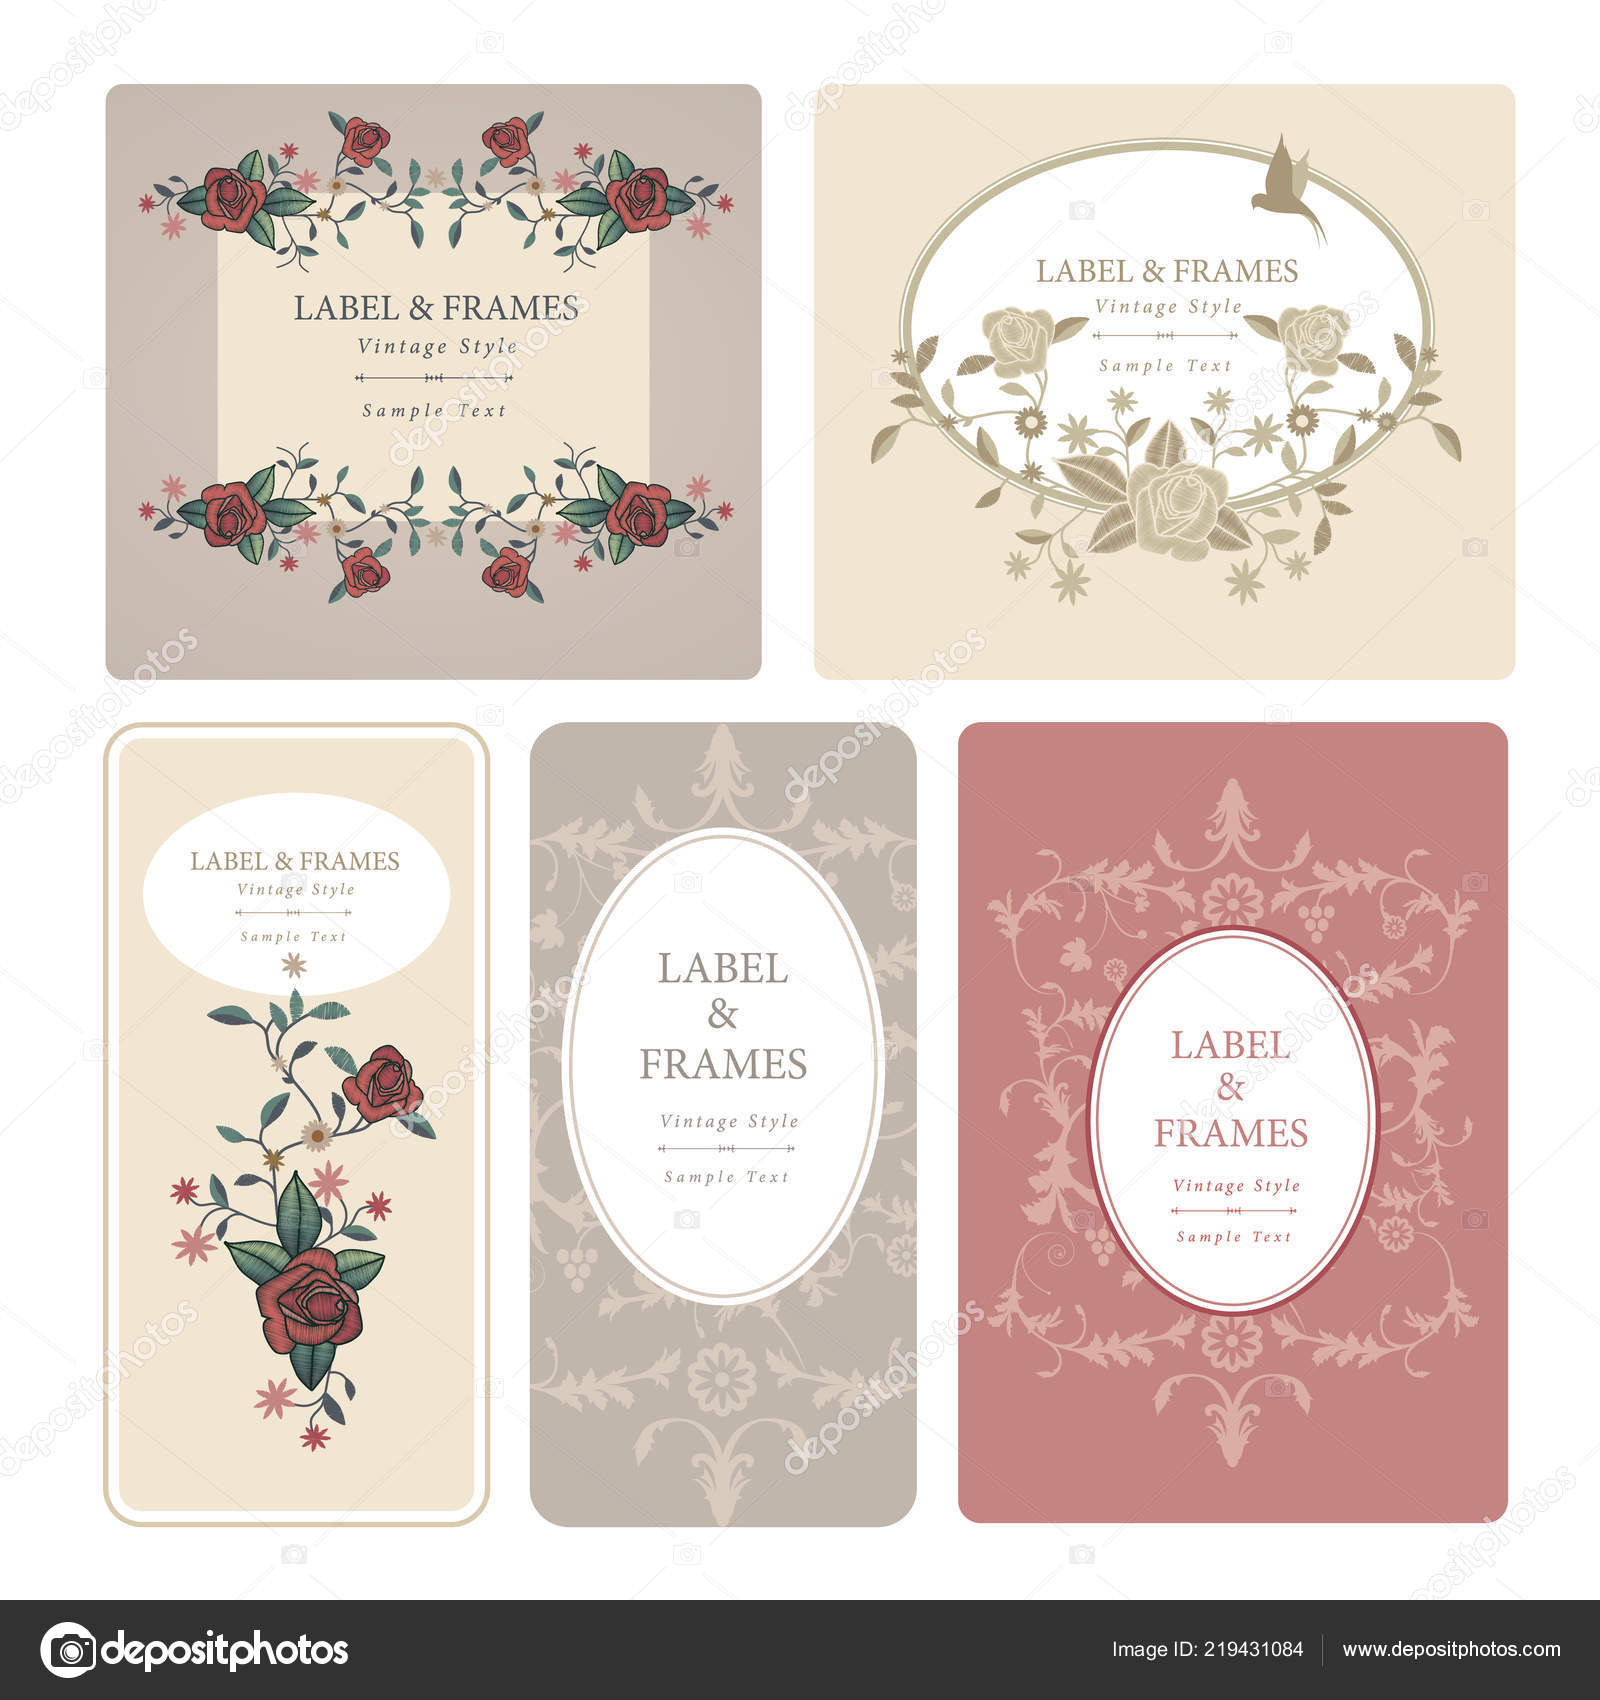 Elegant antique vintage style labels with decoration of birds and